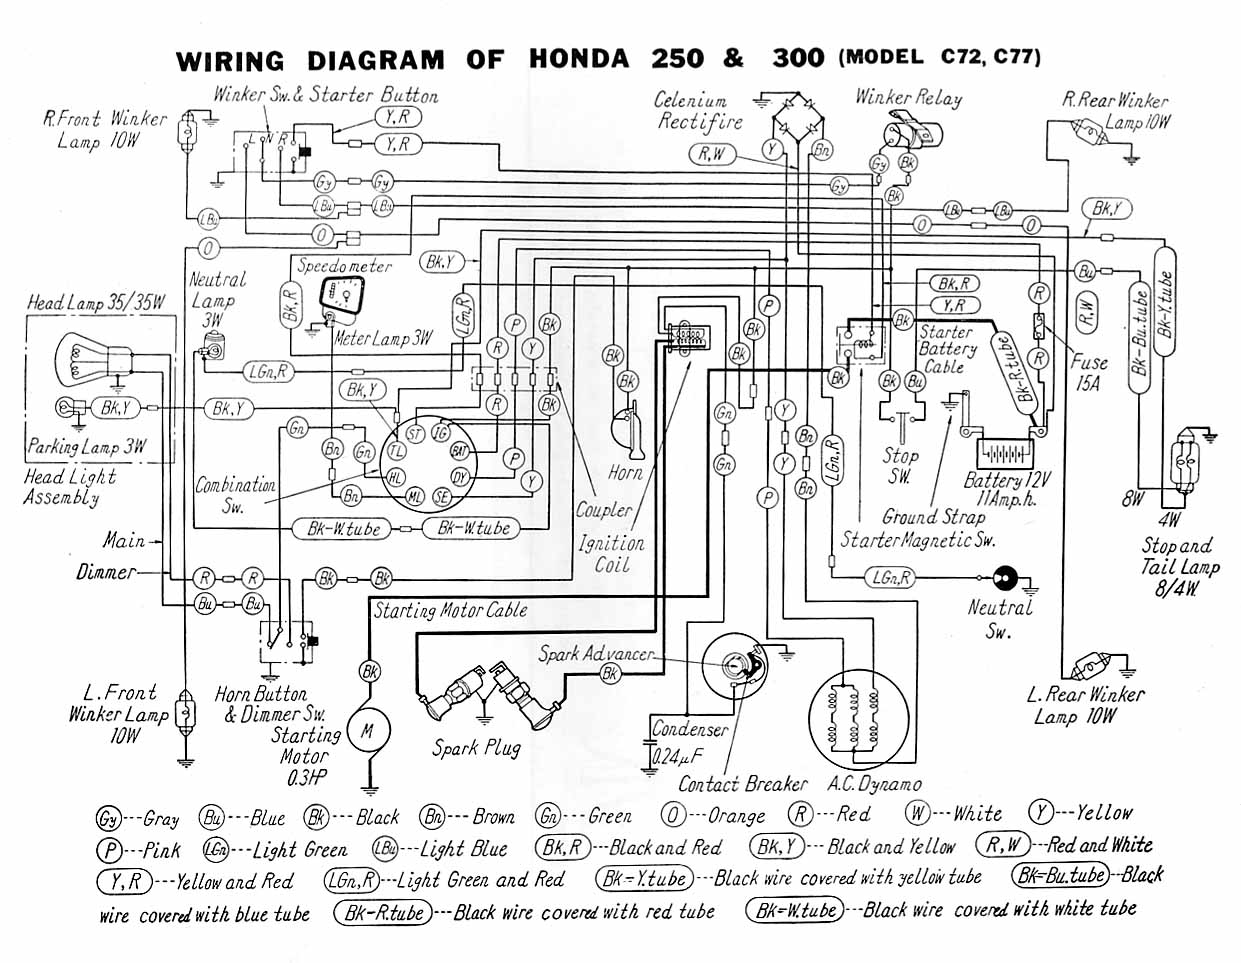 Wiring diagrams c77 jpg swarovskicordoba Image collections